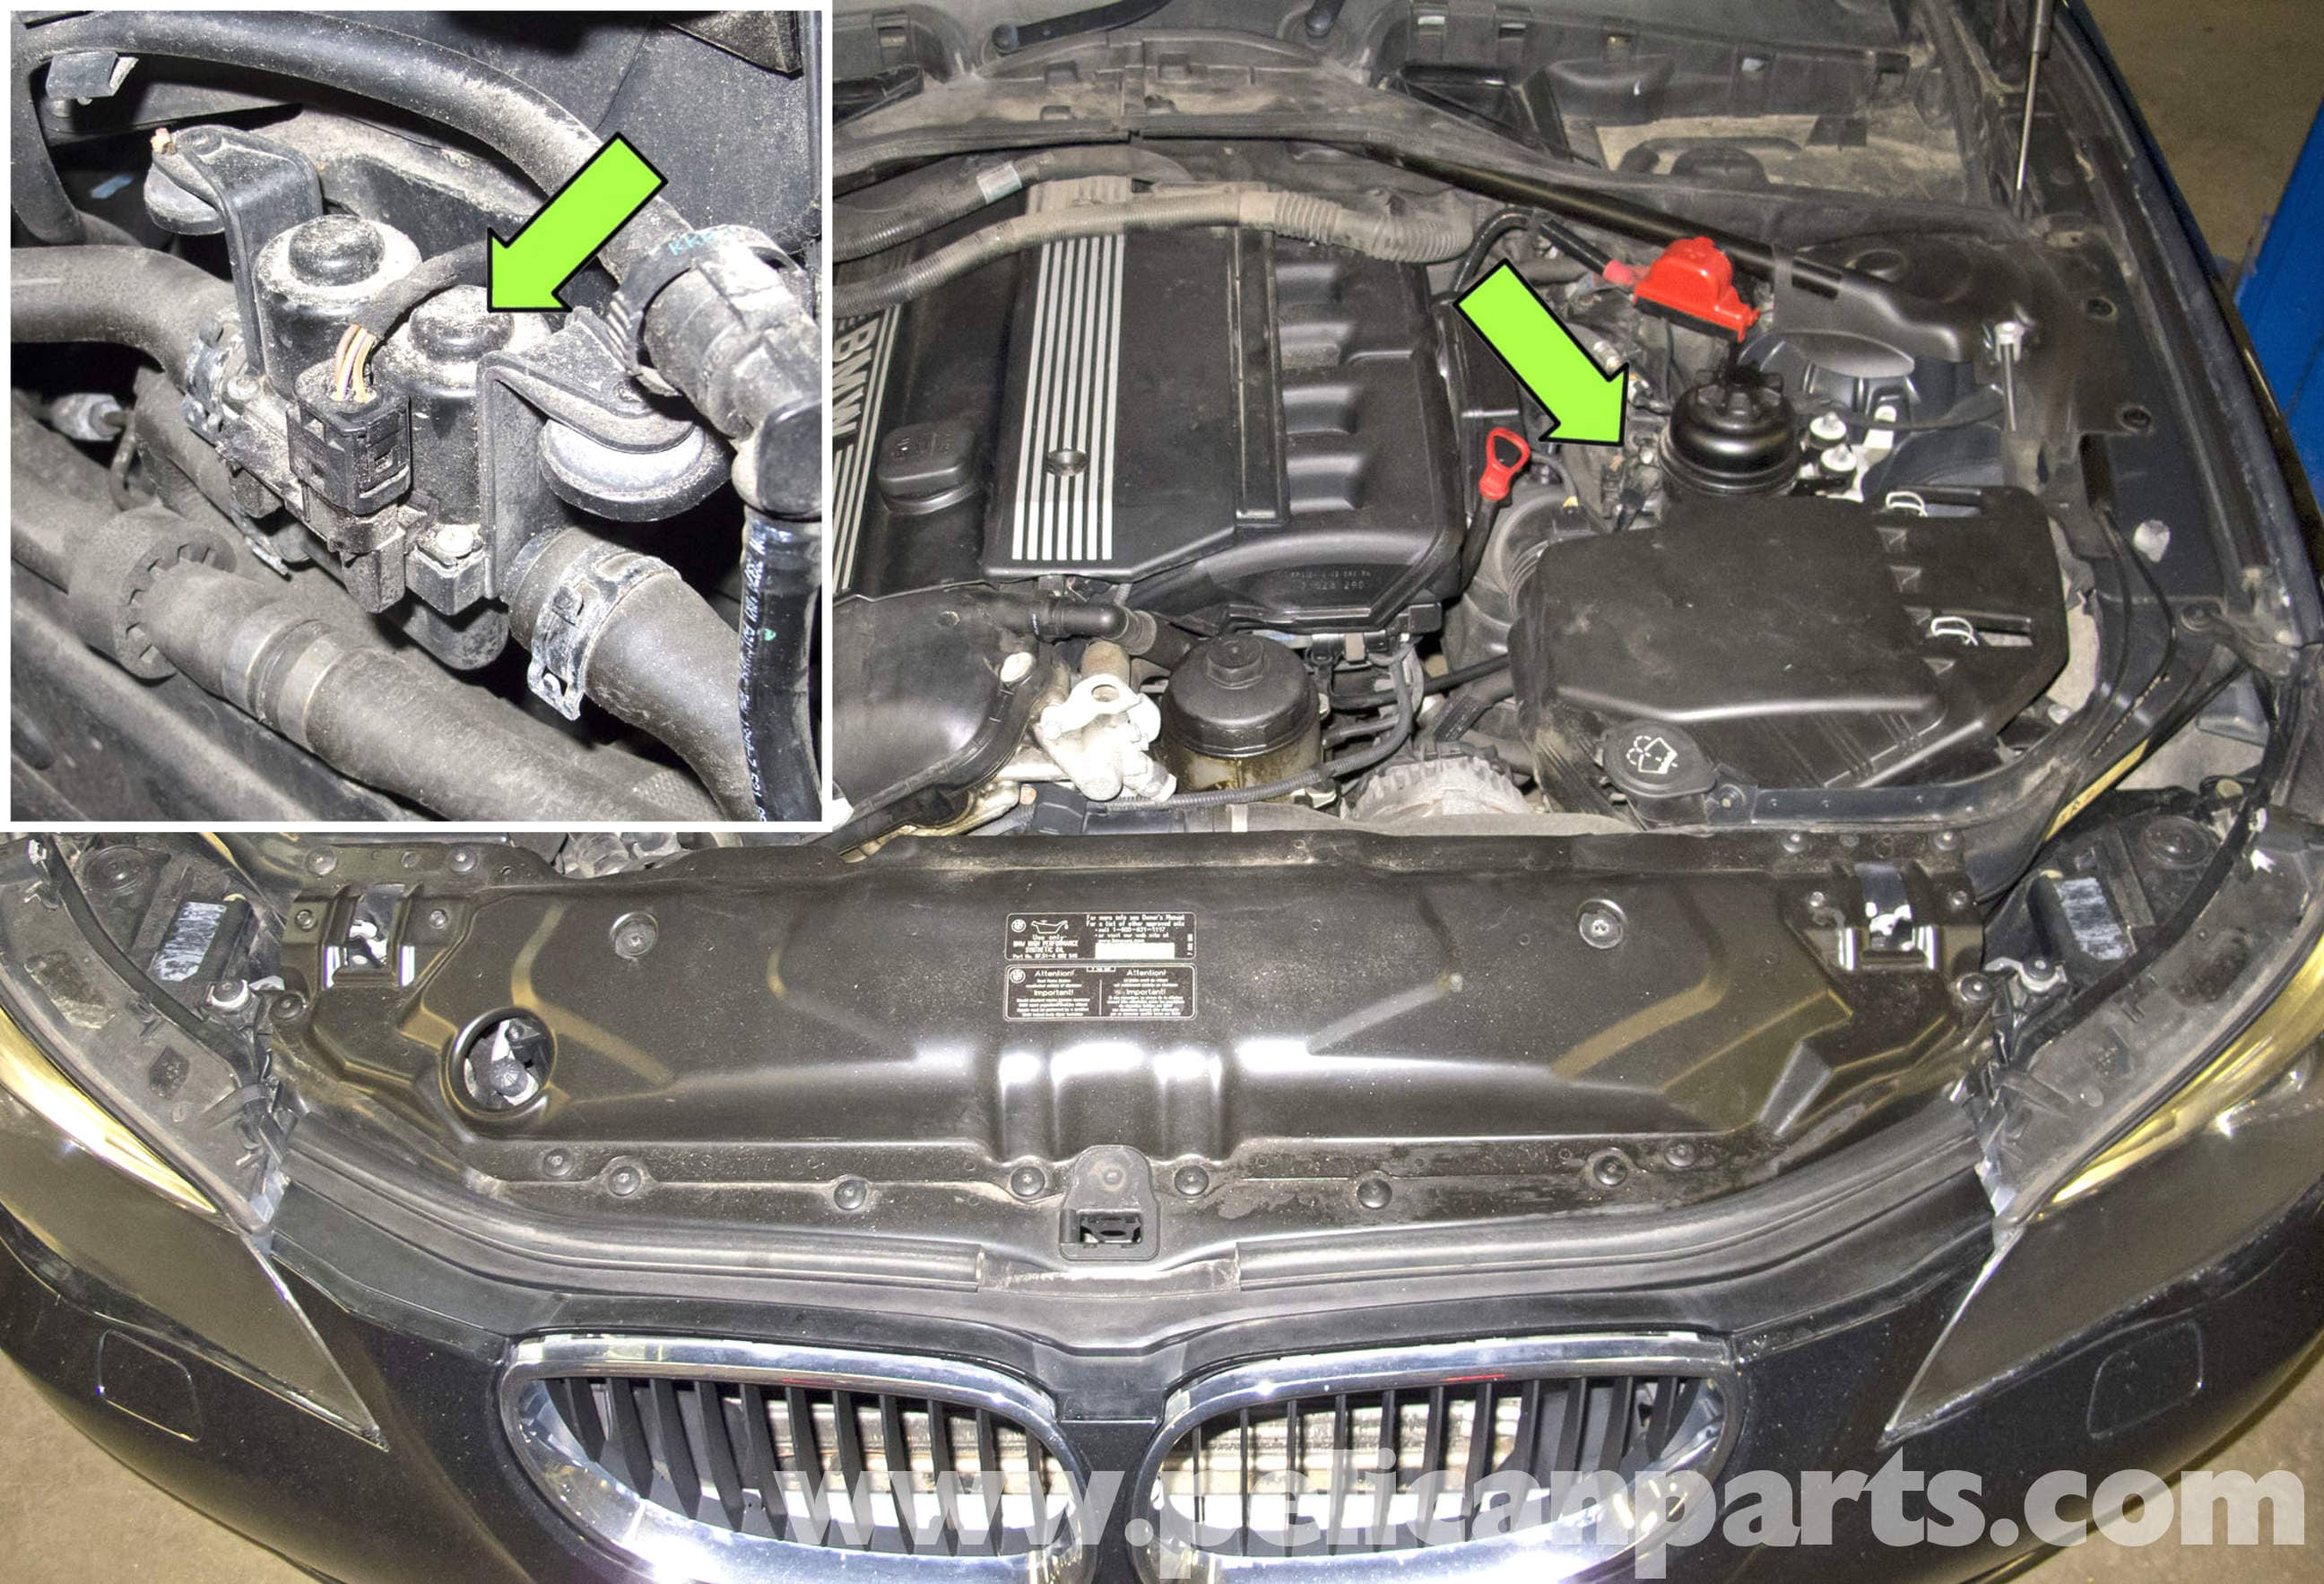 Xi Fuse Diagram Bmw E60 5 Series Heater Valve Testing And Replacement